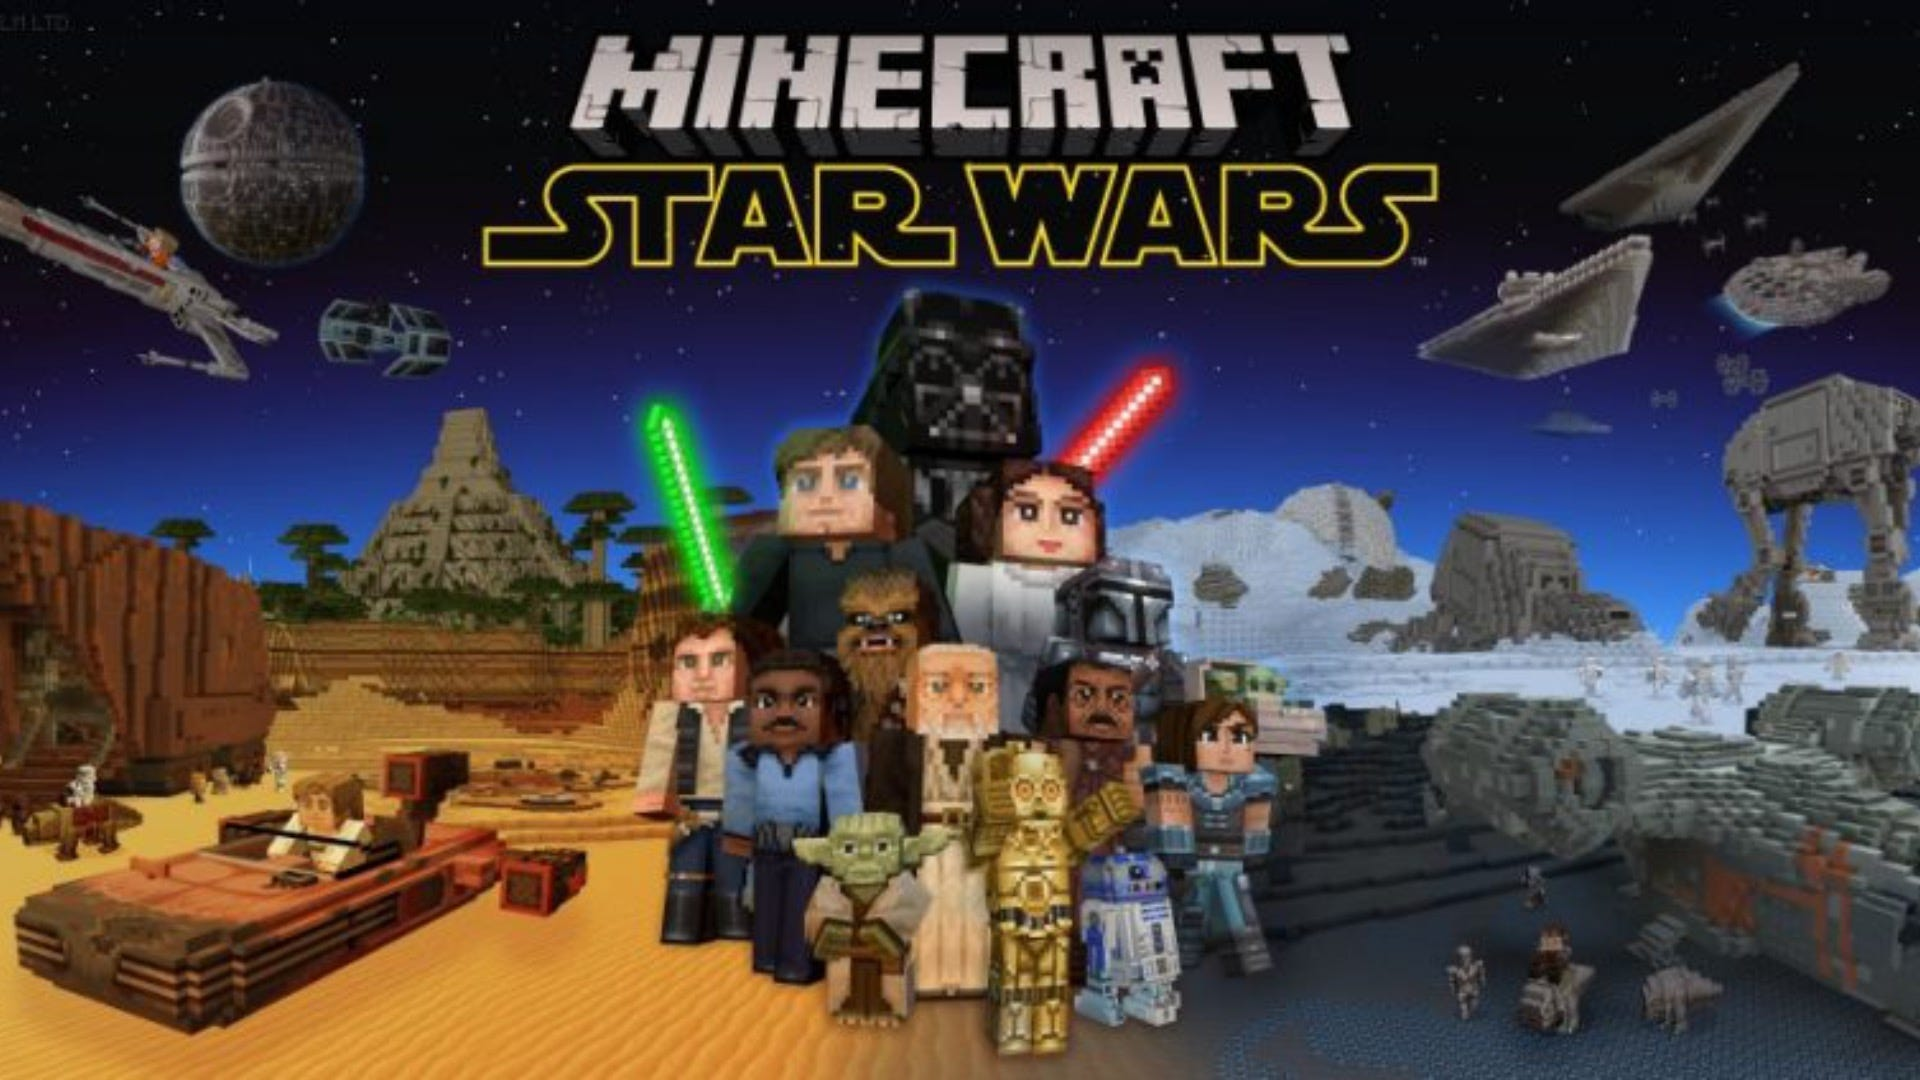 Get Your Light Sabers Out A New Star Wars Dlc Is Available In Minecraft Review Geek